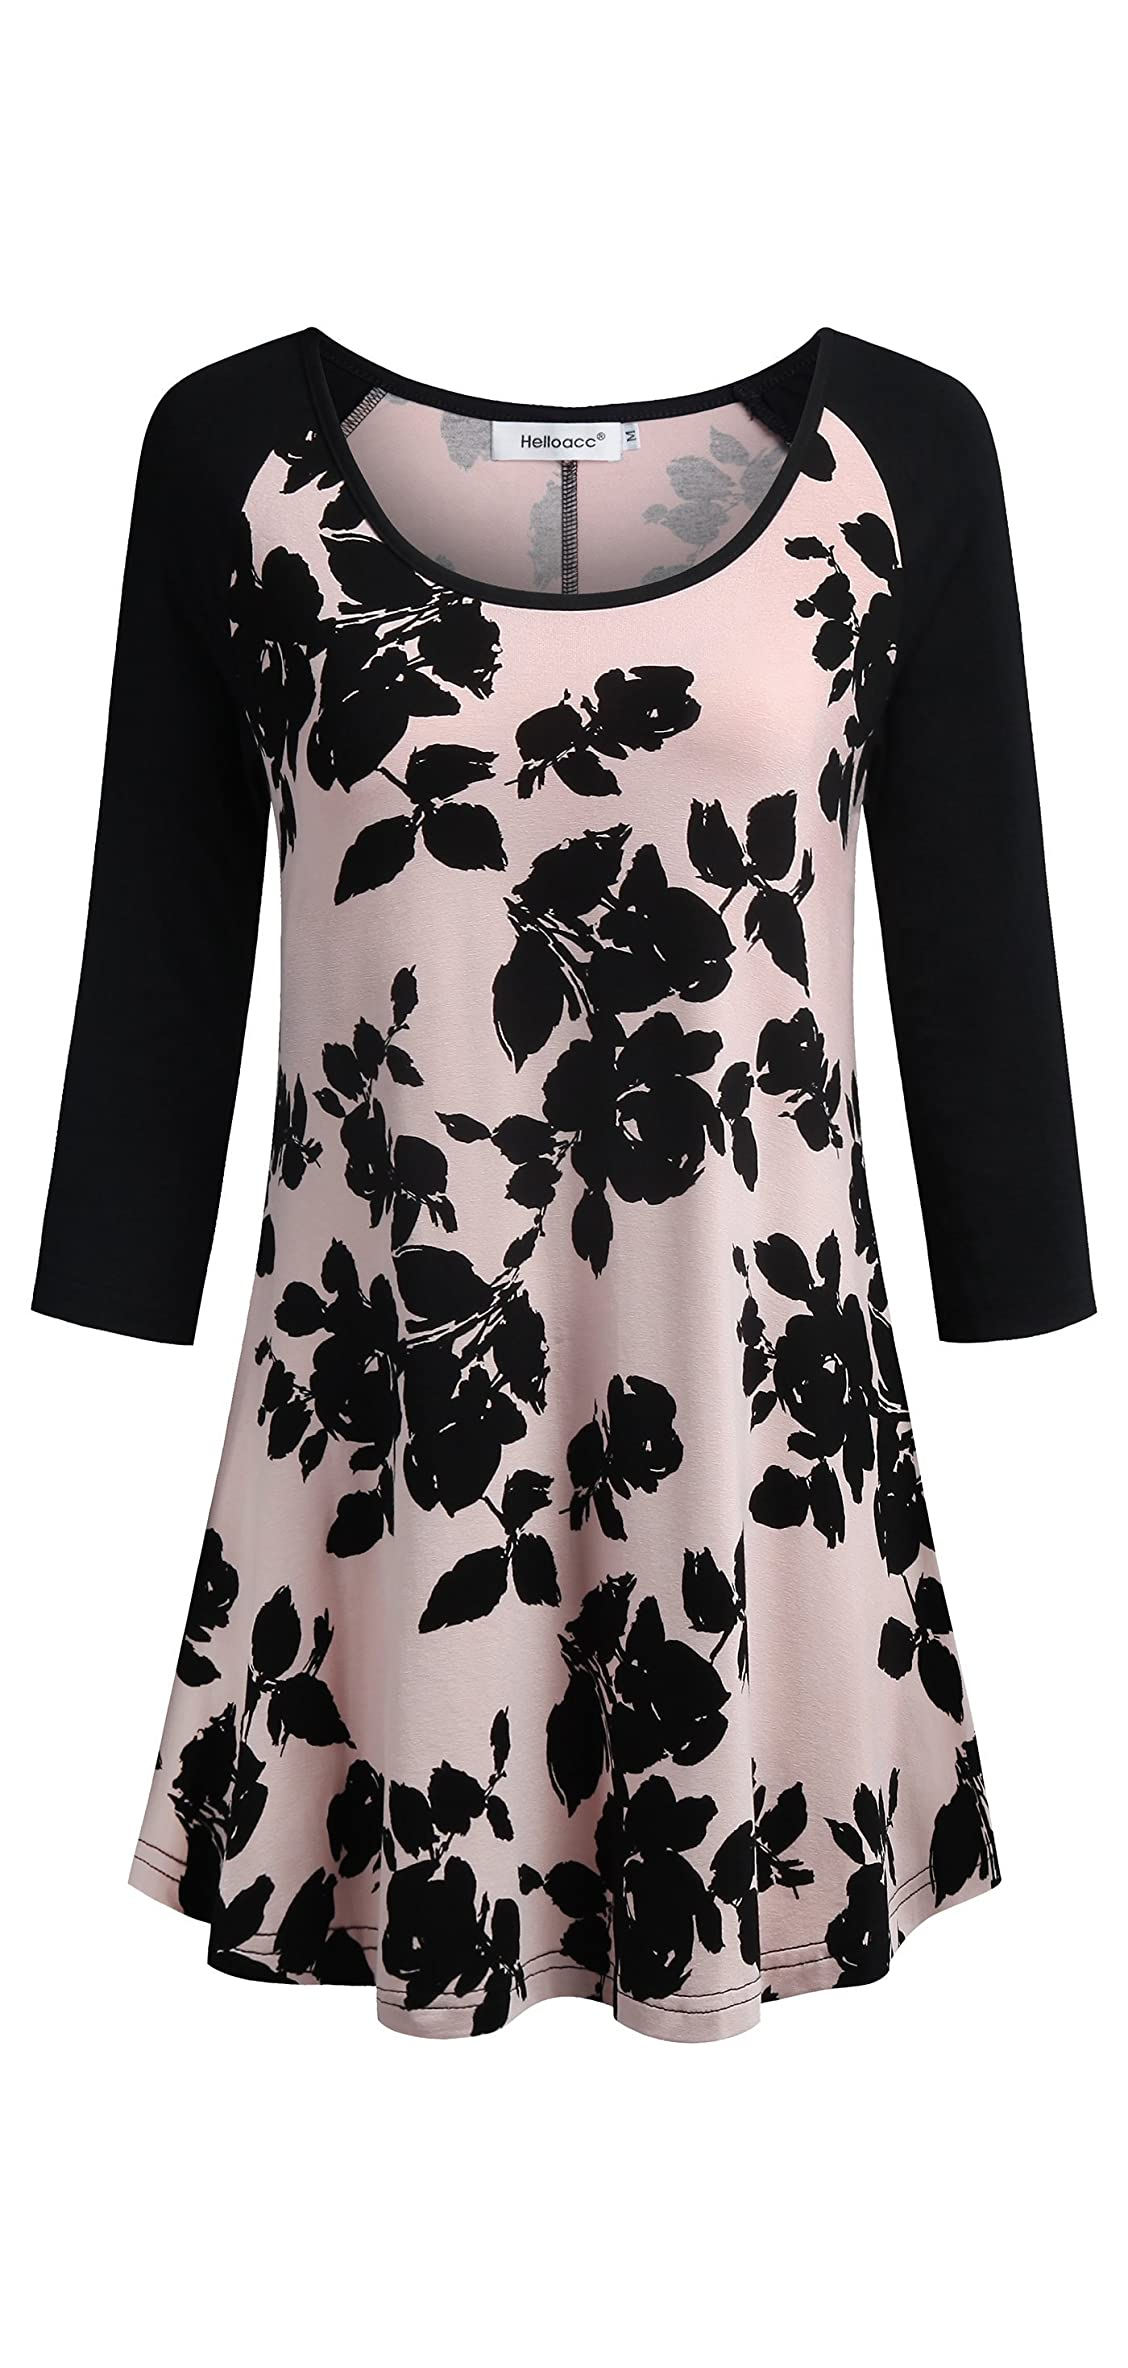 Scoop Neck Floral Tunic Tops For Women / Sleeve Long